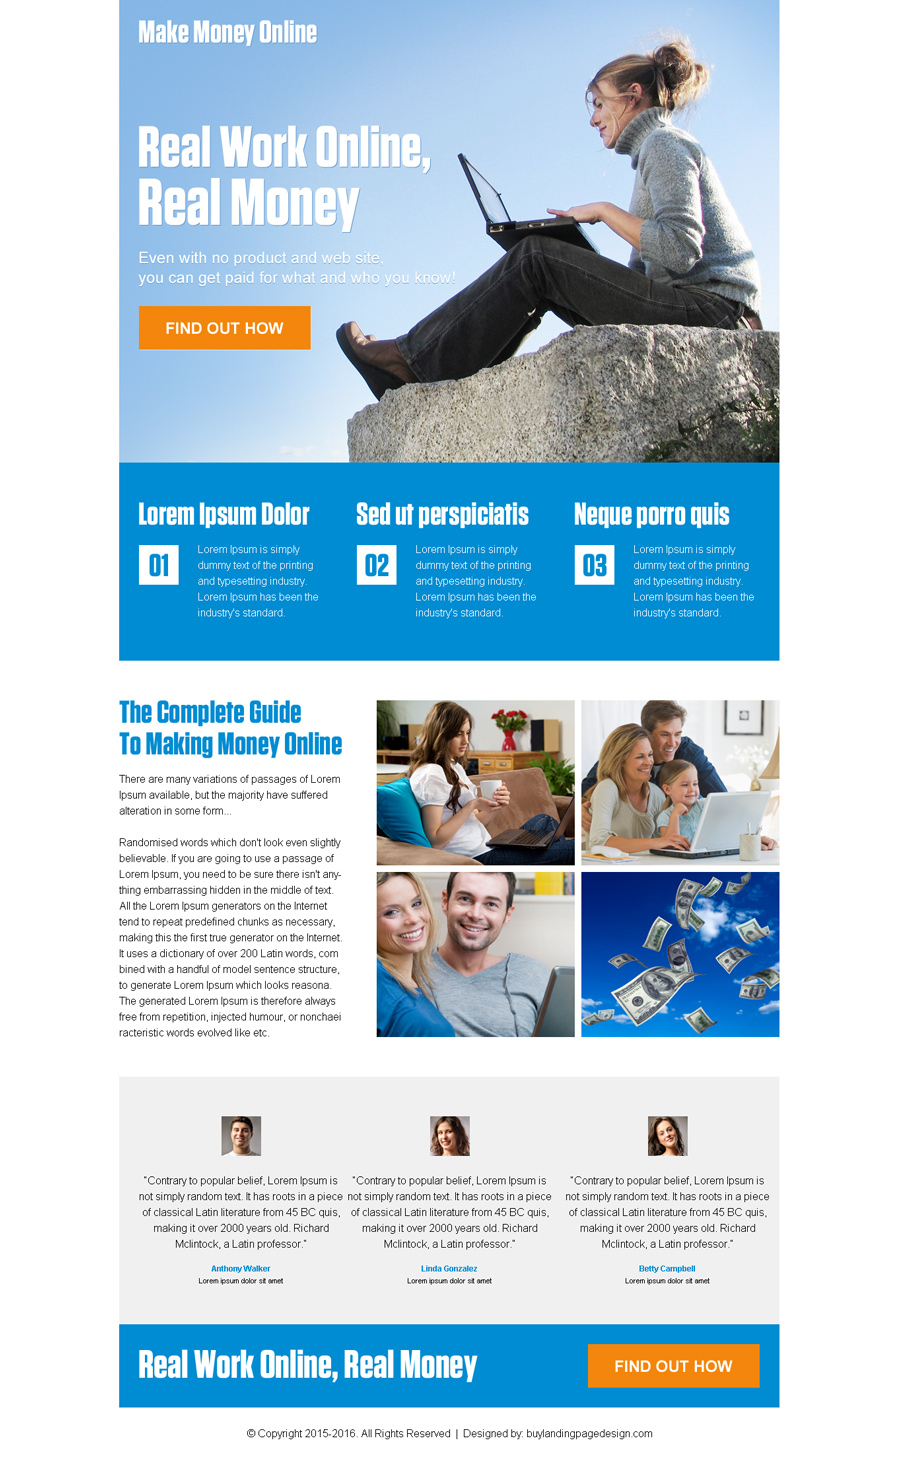 make-money-online-pay-per-click-converting-landing-page-design-template-008